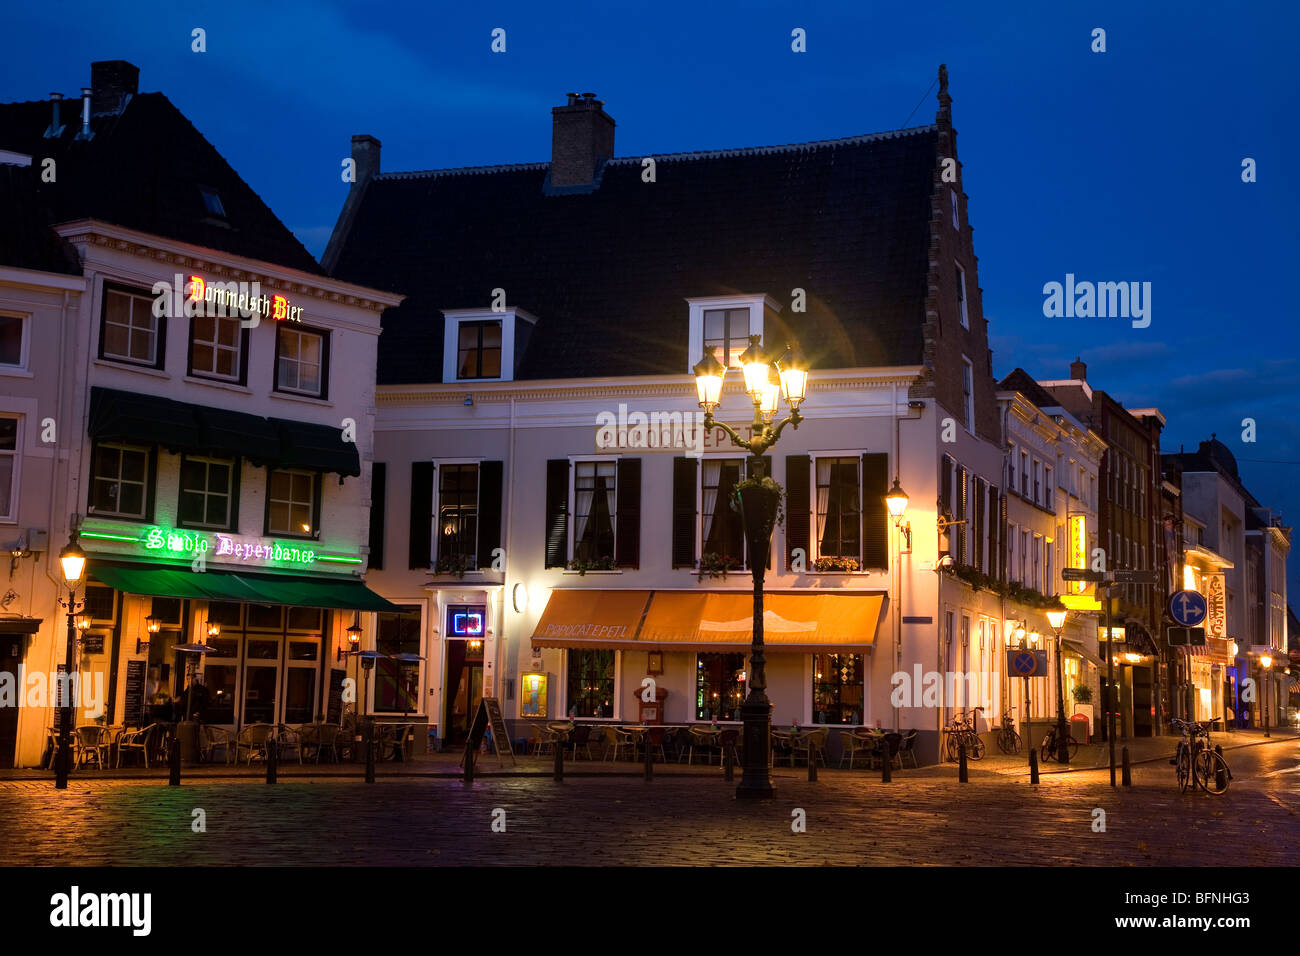 Breda at night. The city has numerous pubs, bars and restaurants and is known for its lively and hospitable nightlife. Stock Photo